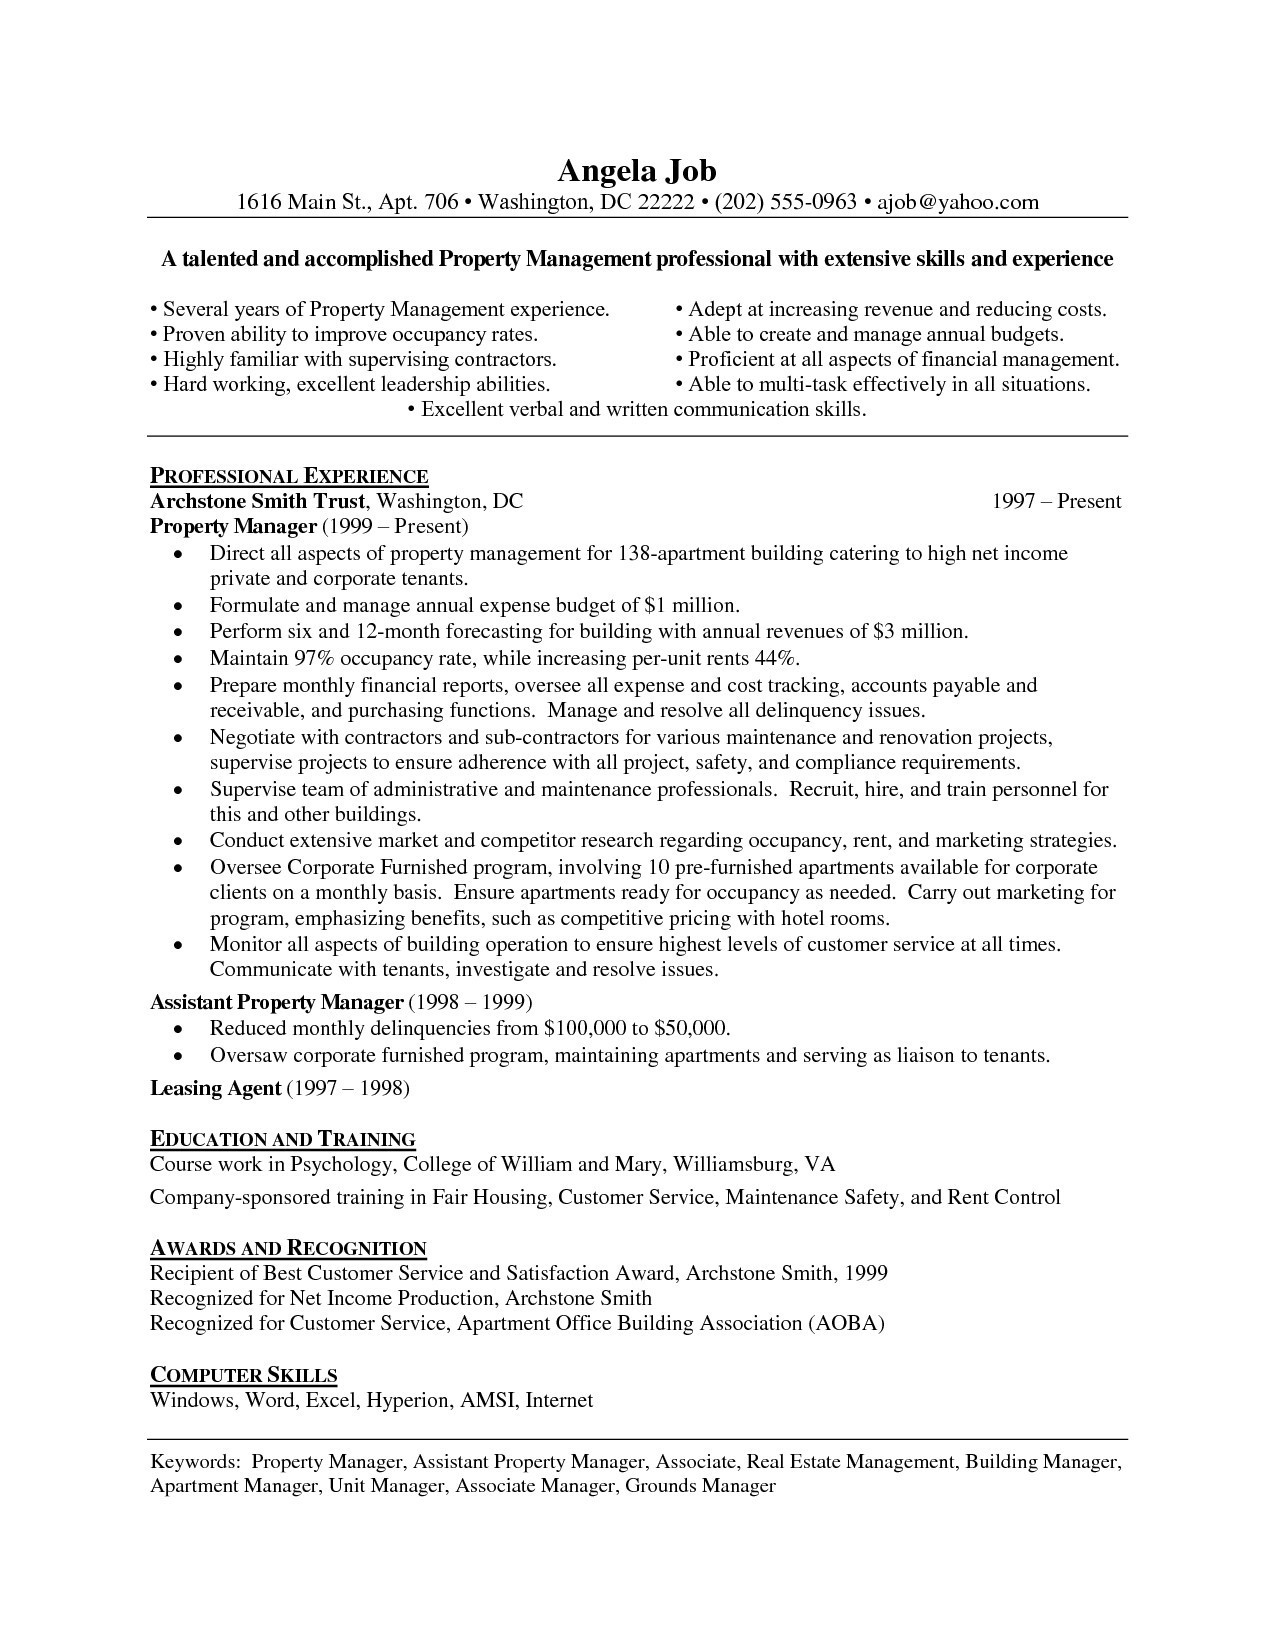 Property Manager Job Description Resume - Property Management Resume Examples Reference assistant Property